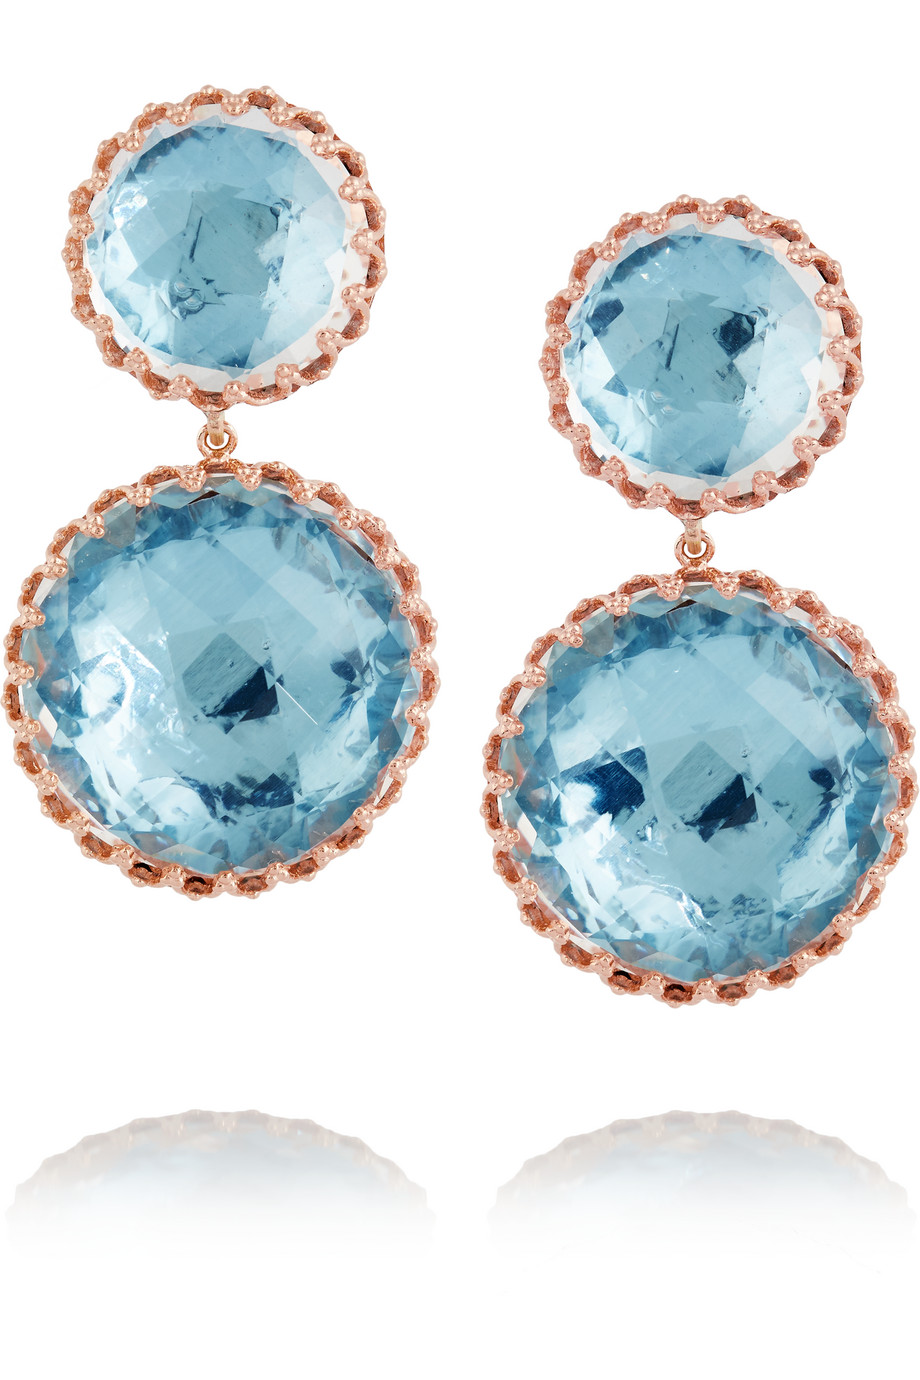 Larkspur & Hawk Olivia Convertible Rose Gold-Dipped Topaz Earrings, Rose Gold/Blue, Women's